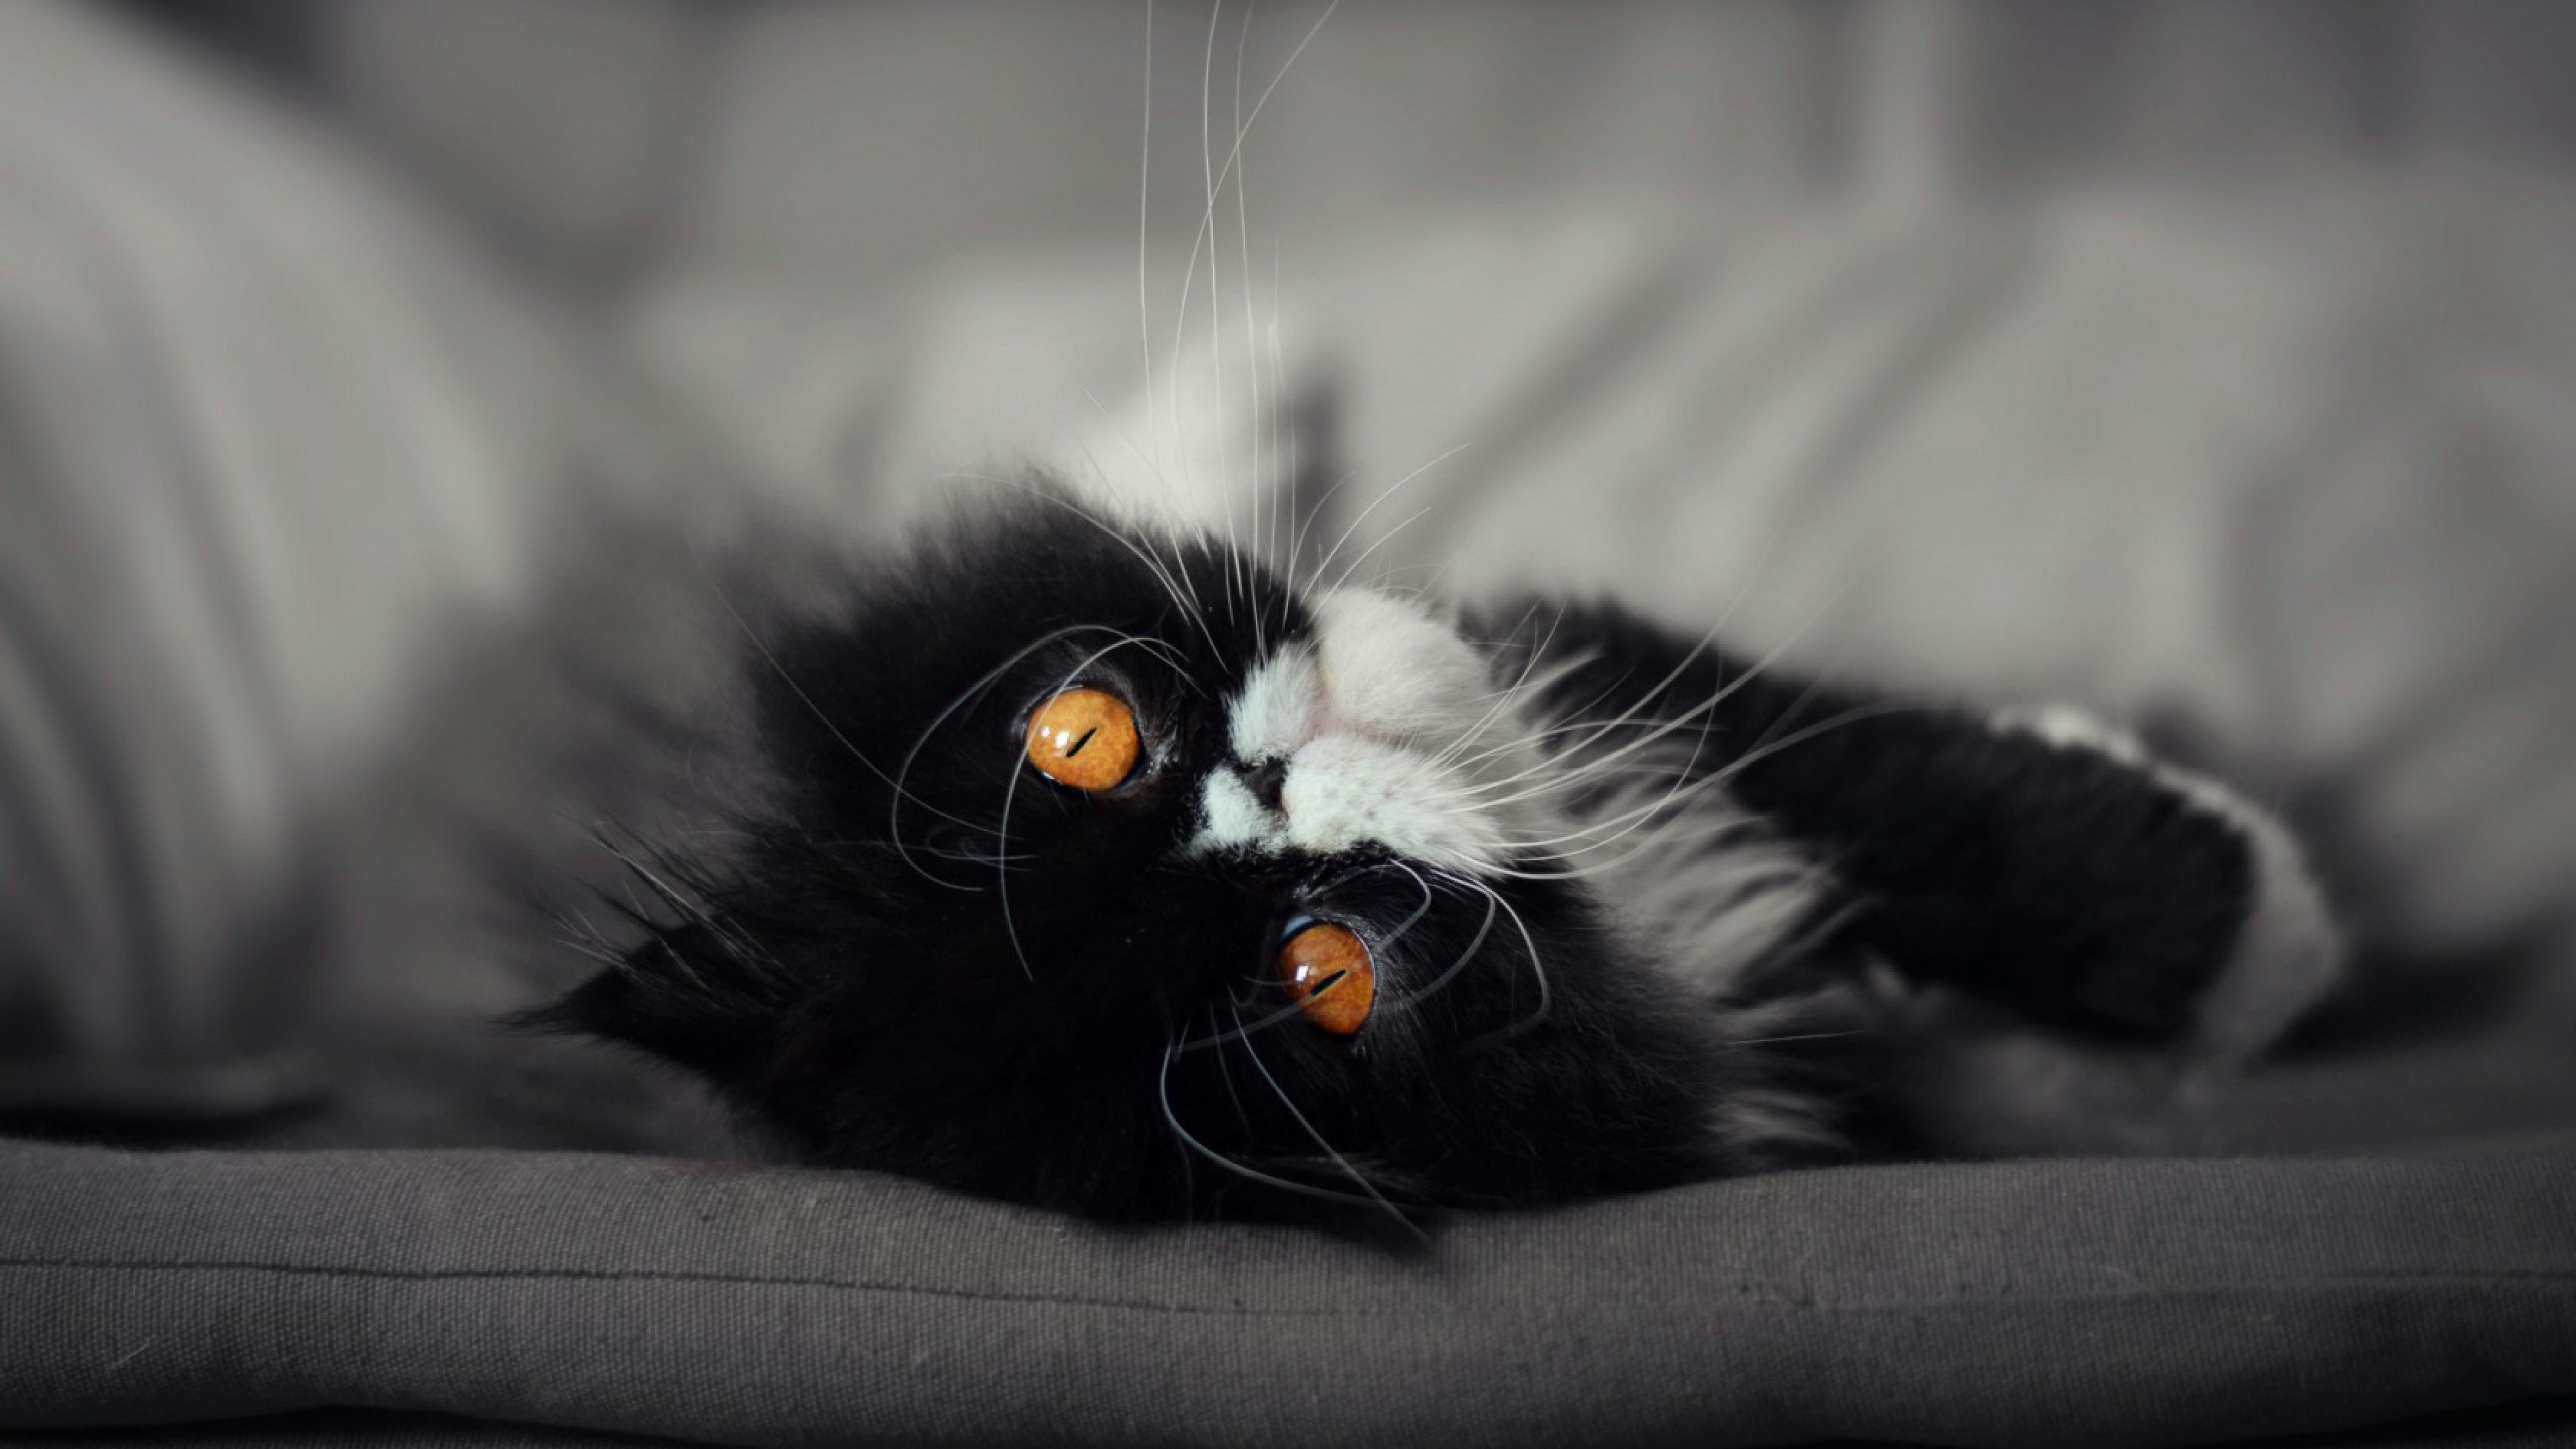 Wallpaper 4k Cat Eyes 4k Animals Wallpapers Black